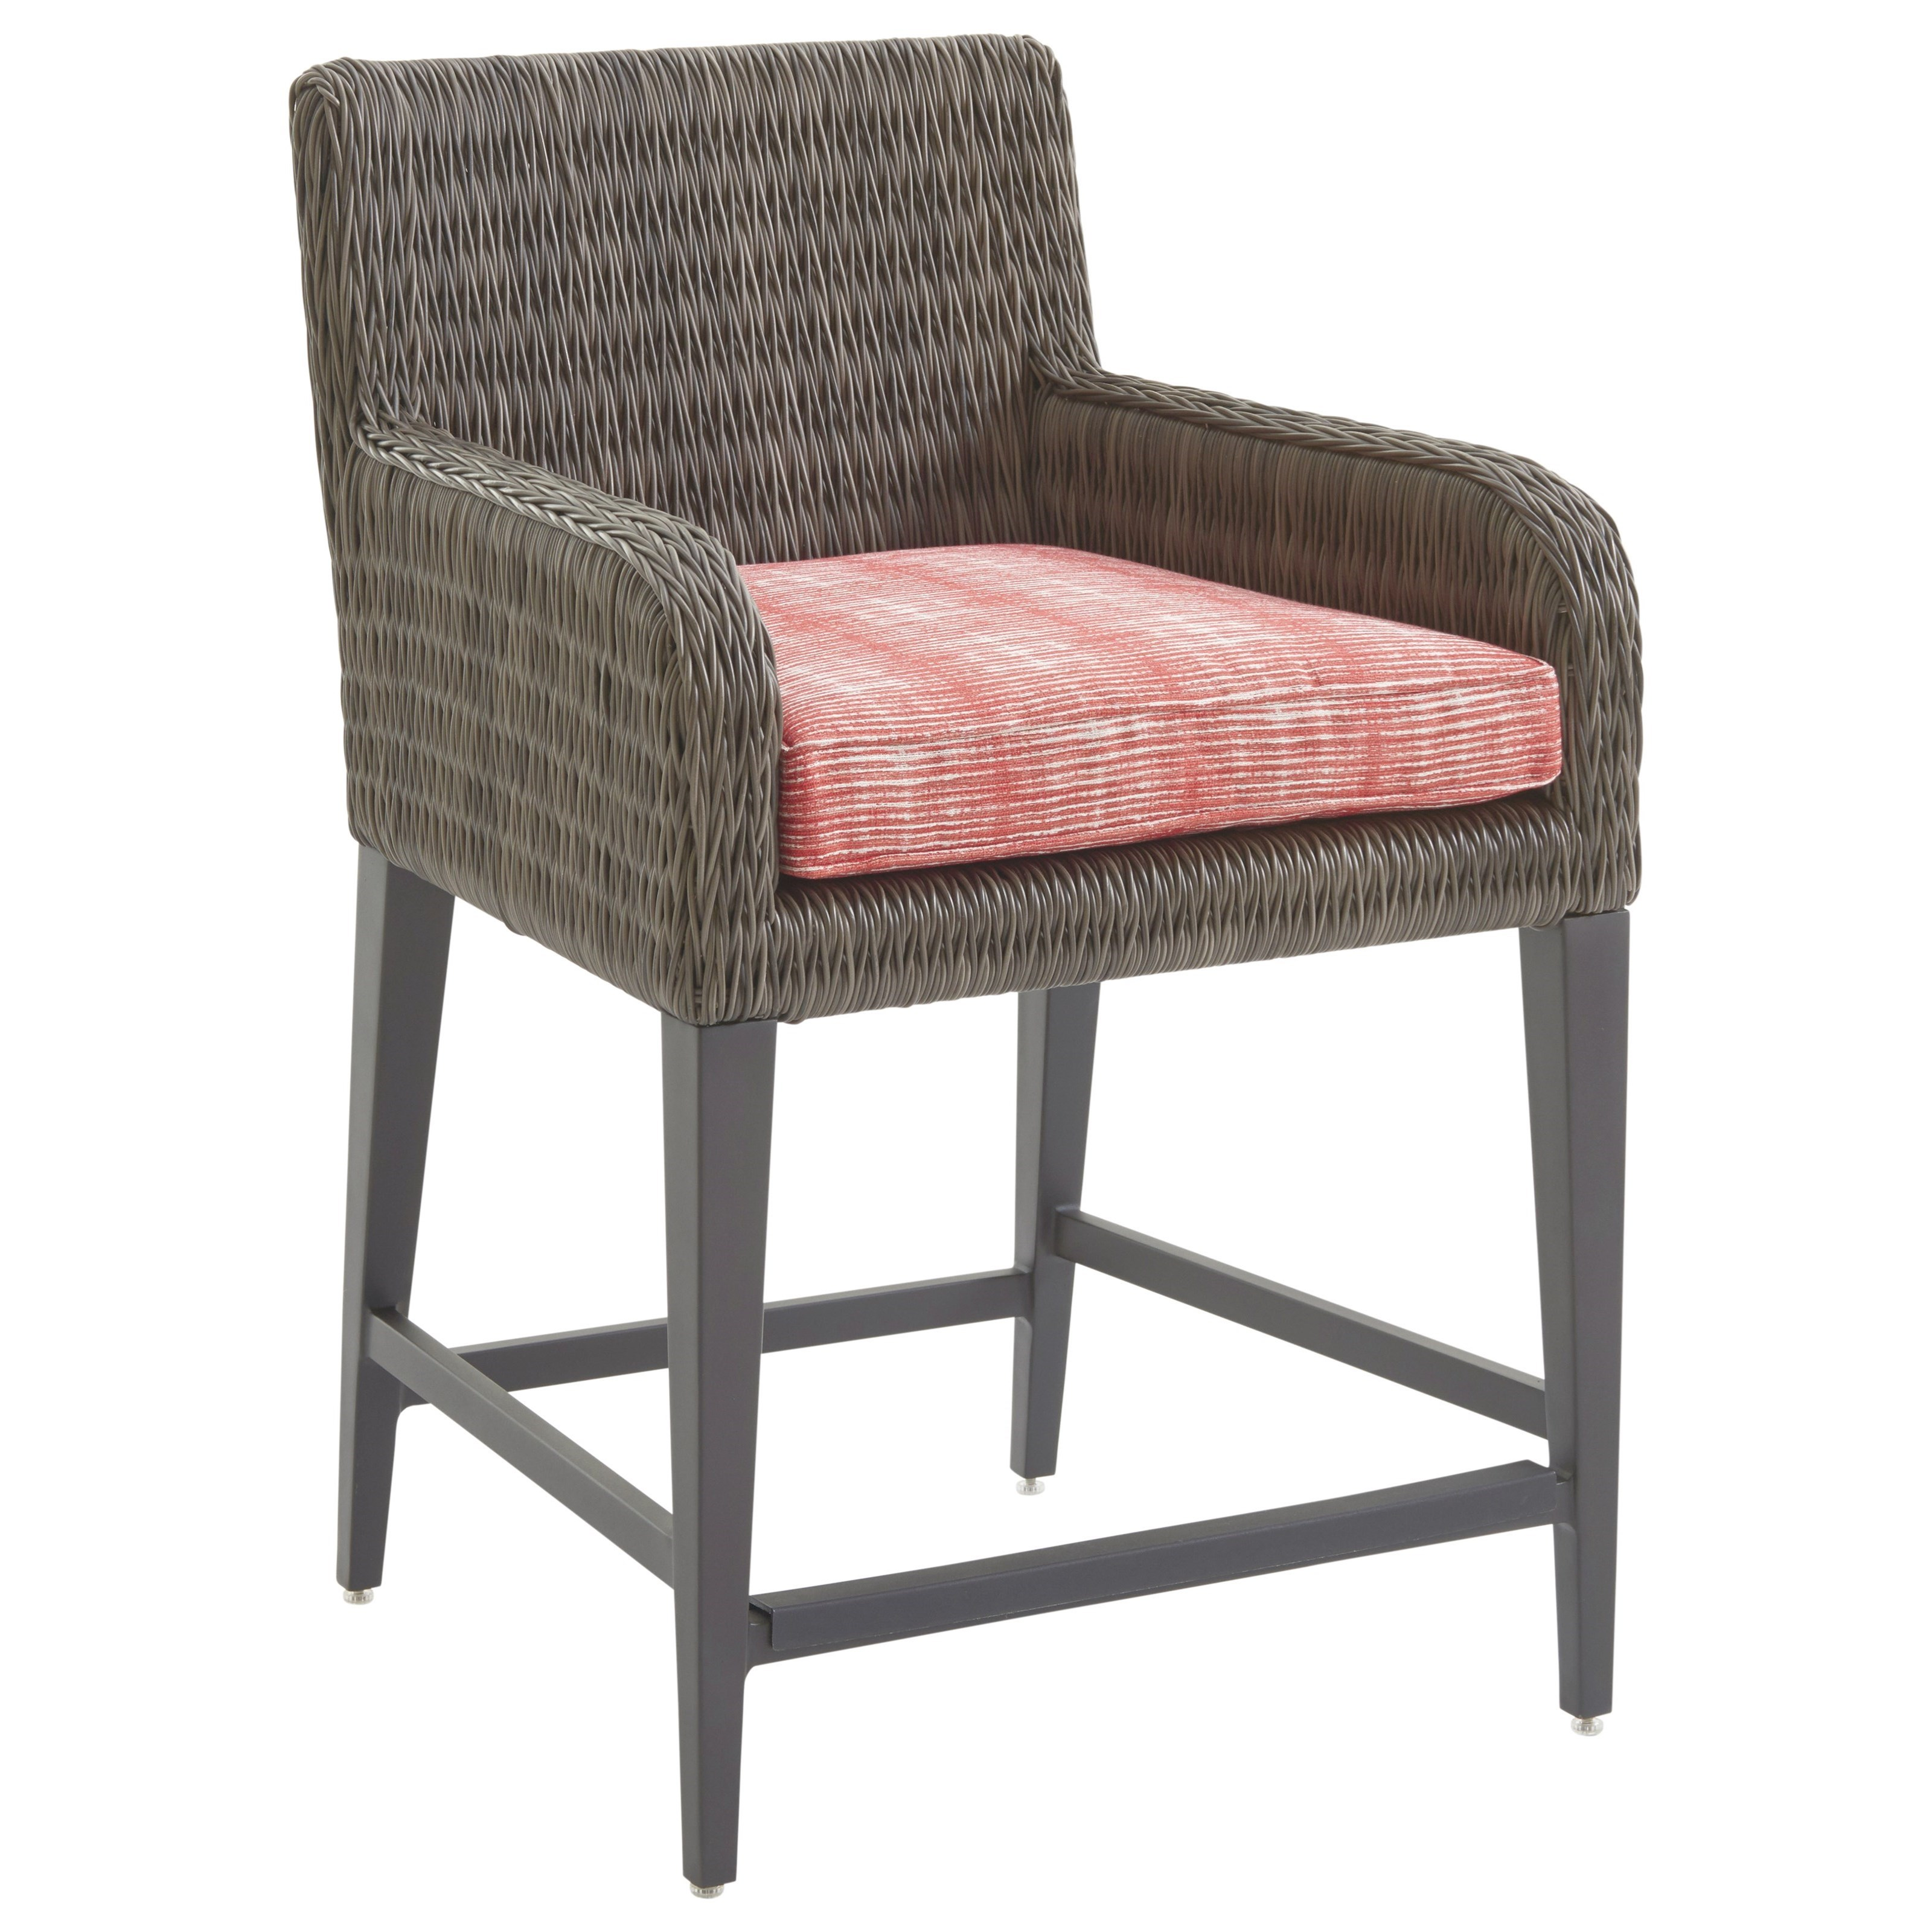 Cypress Point Ocean Terrace Outdoor Counter Stool by Tommy Bahama Outdoor Living at Baer's Furniture